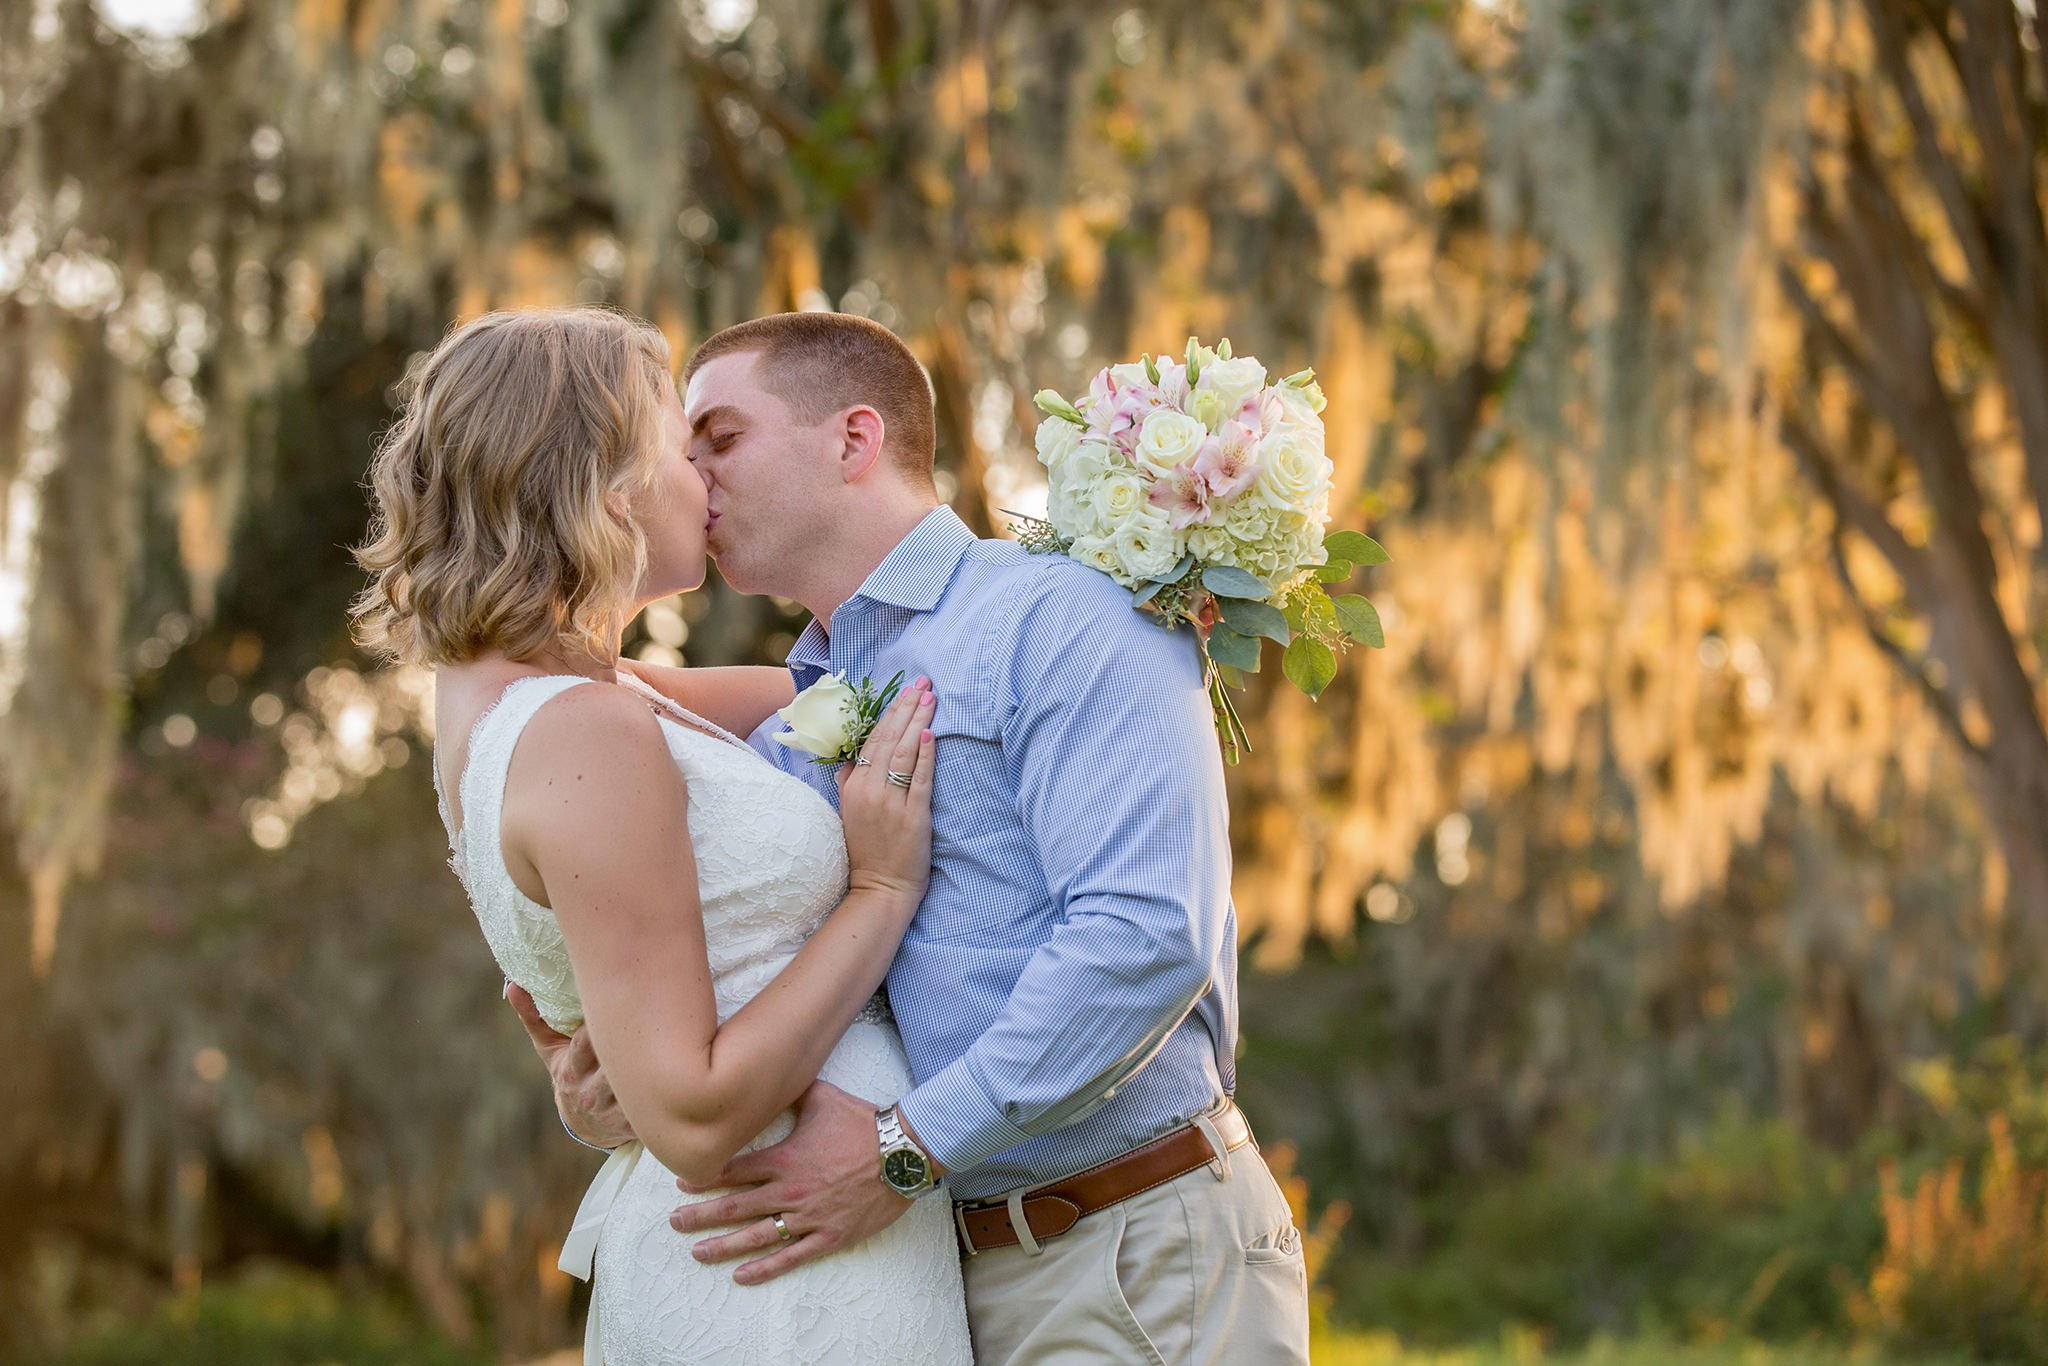 The couple is kissing, the bride holds the bouquet